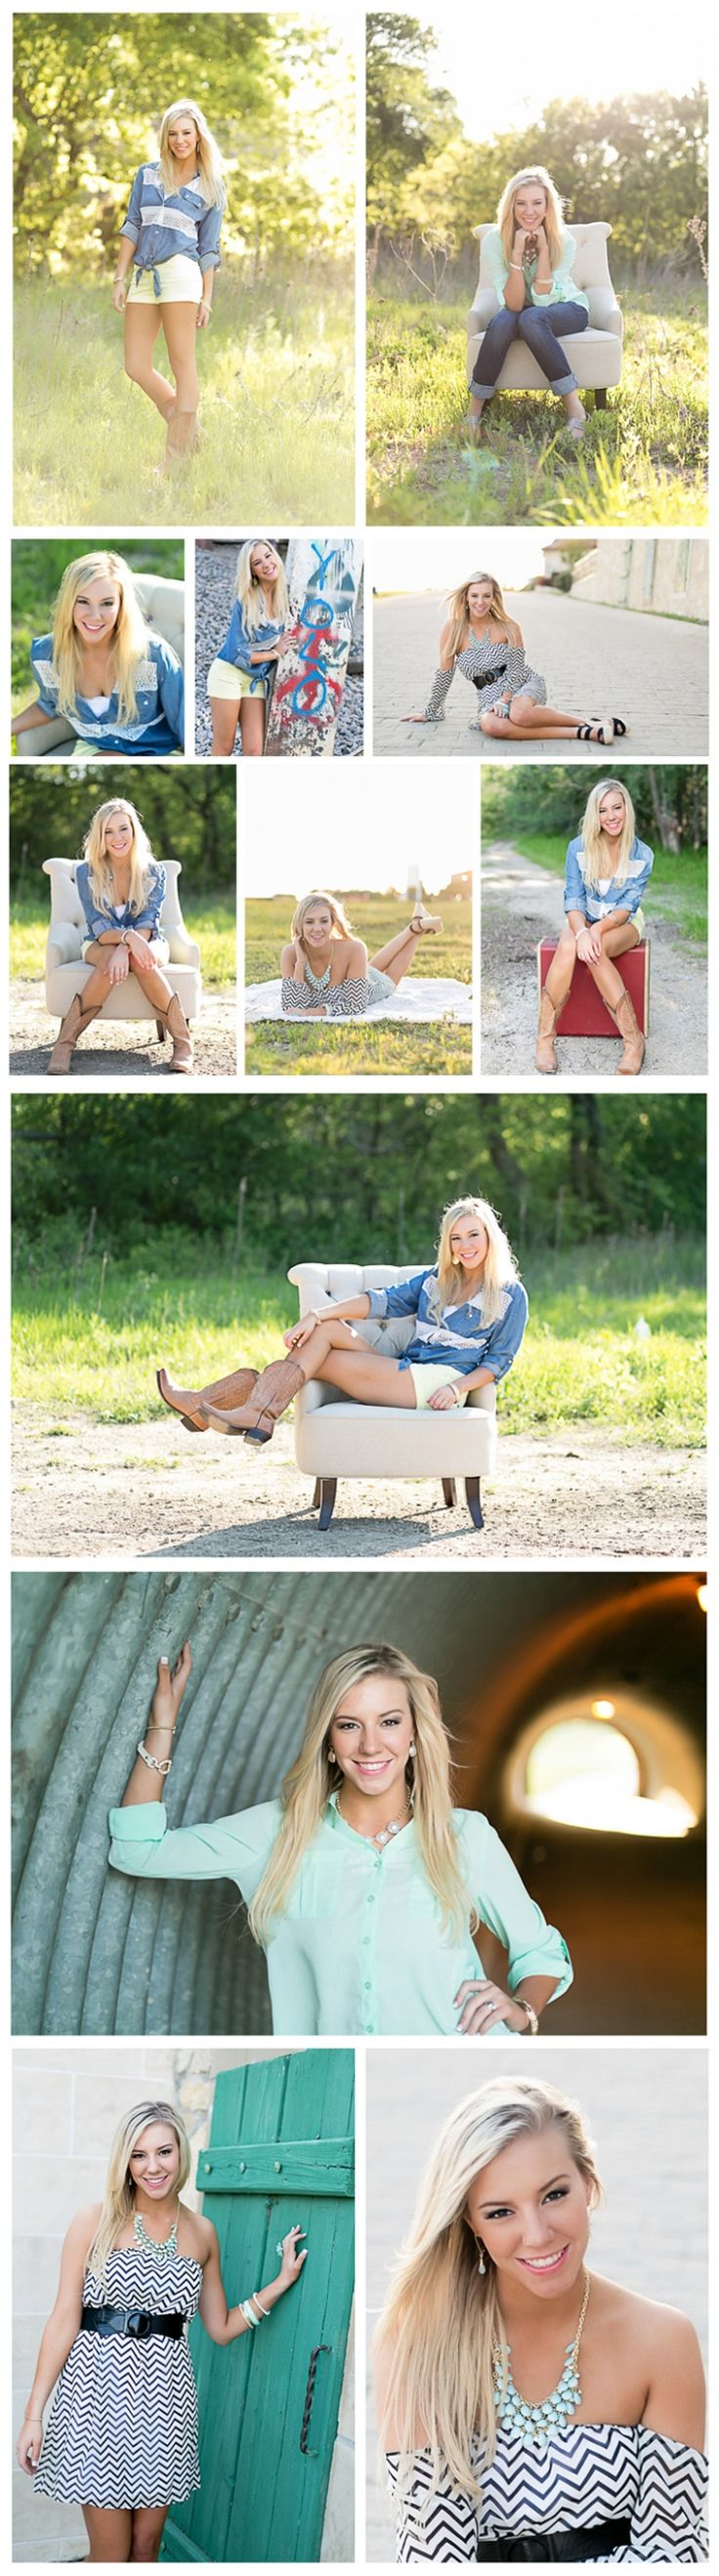 Senior Photography - Senior Poses - Sunlight - boots - outdoor - country